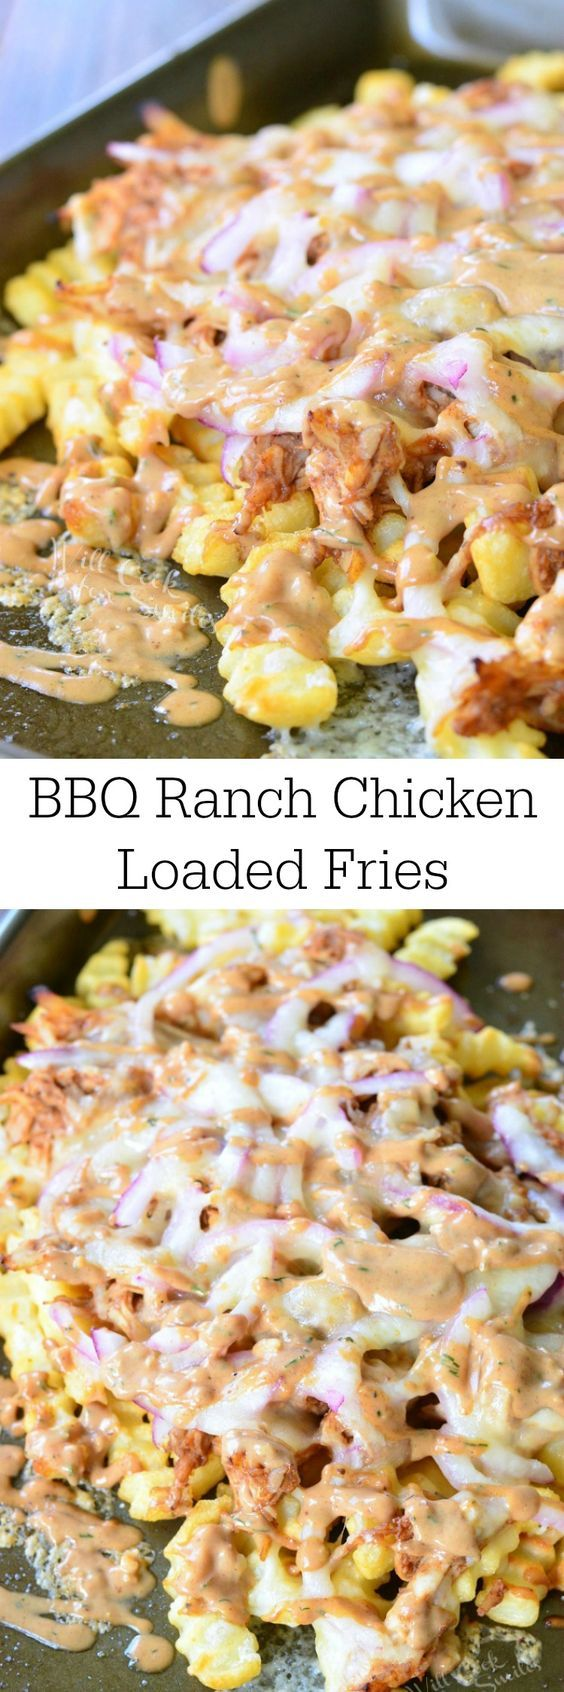 BBQ Ranch Chicken Loaded Fries. SIMPLE and DELICIOUS loaded fries with shredded rotisserie chicken, gooey cheese, red onion, BBQ sauce, and it's topped with BBQ ranch dressing.